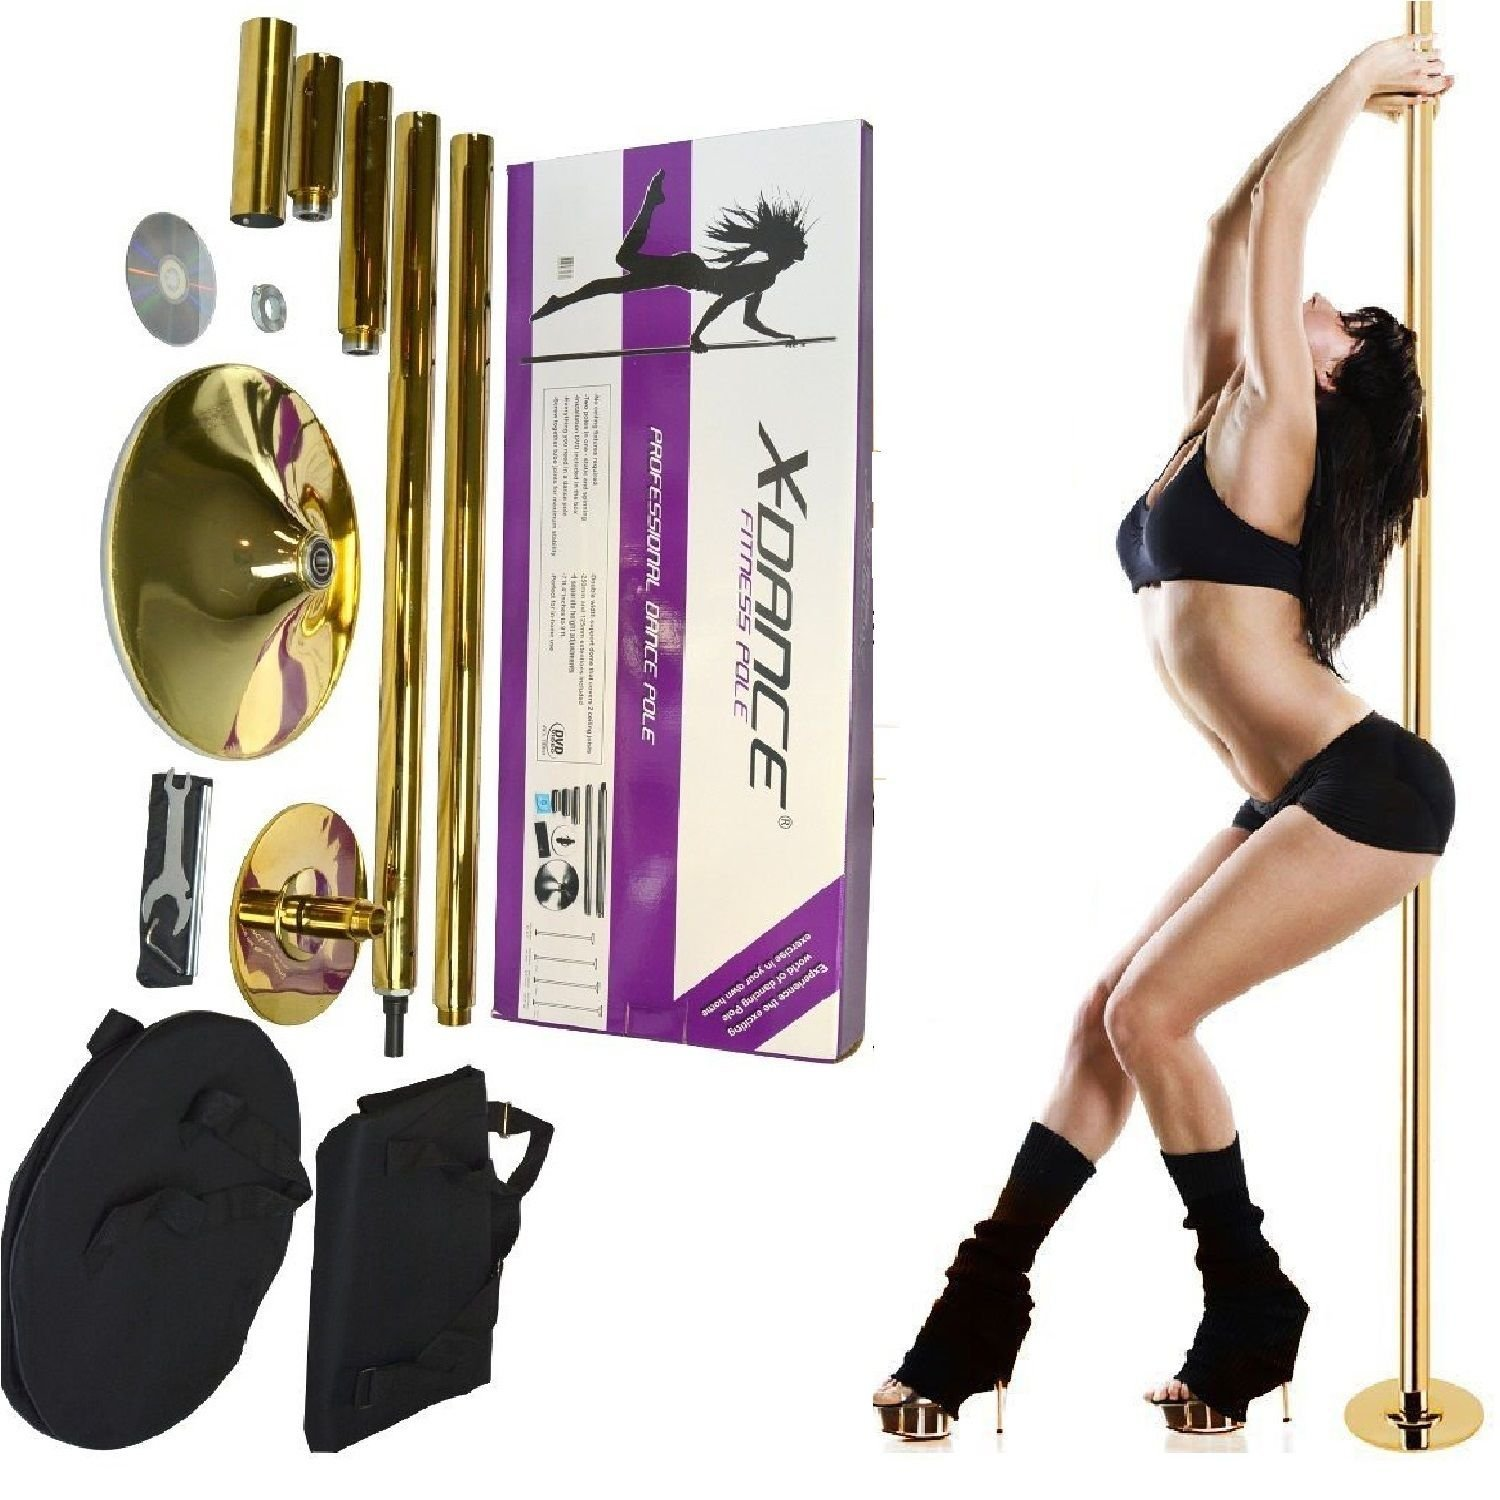 X-Dance 50mm Gold Chrome 9Ft Dance Pole Portable Fitness Exercise Exotic Strip and Spin + Bag by X-Dance (Image #2)